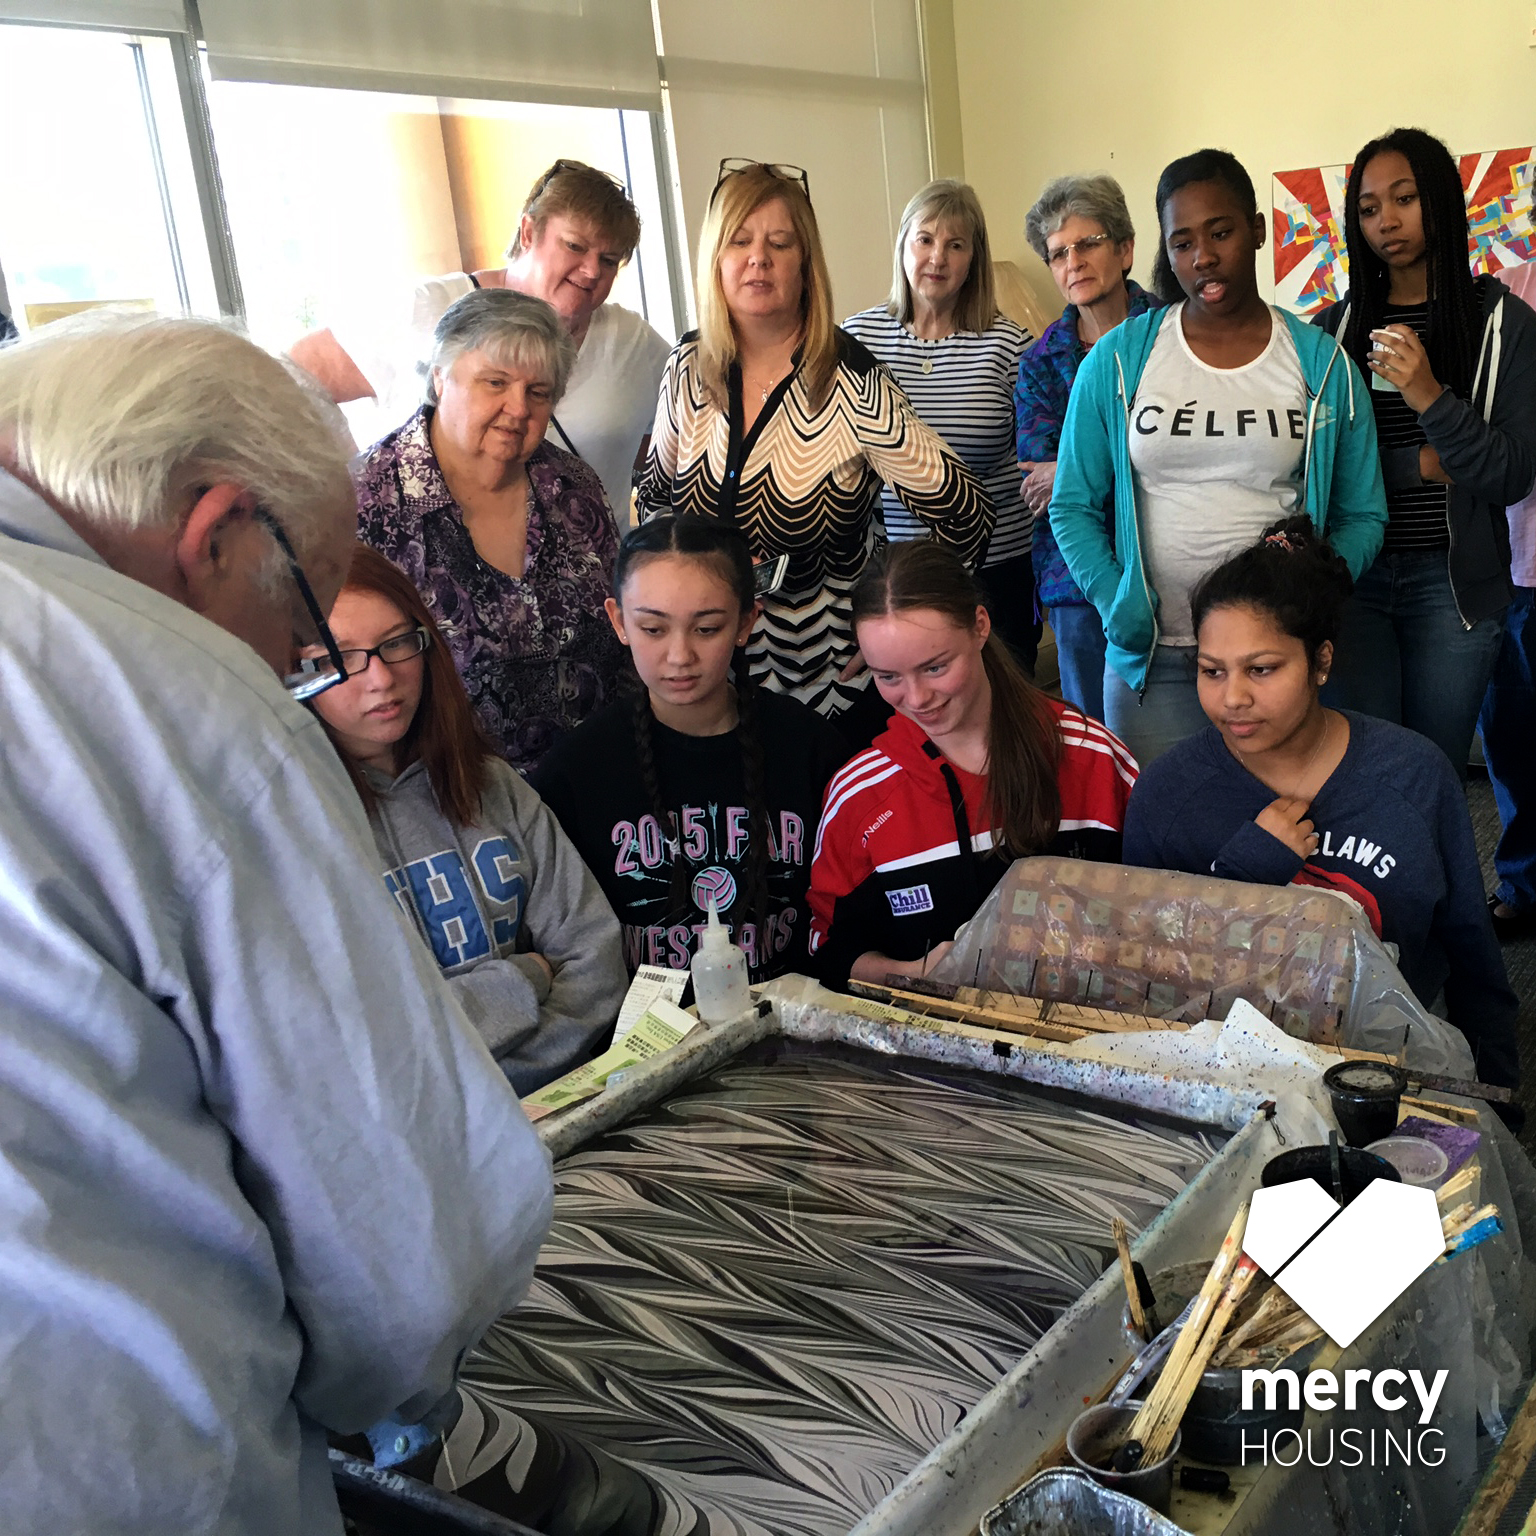 Mercy Housing resident, David, sharing his artwork with visitors